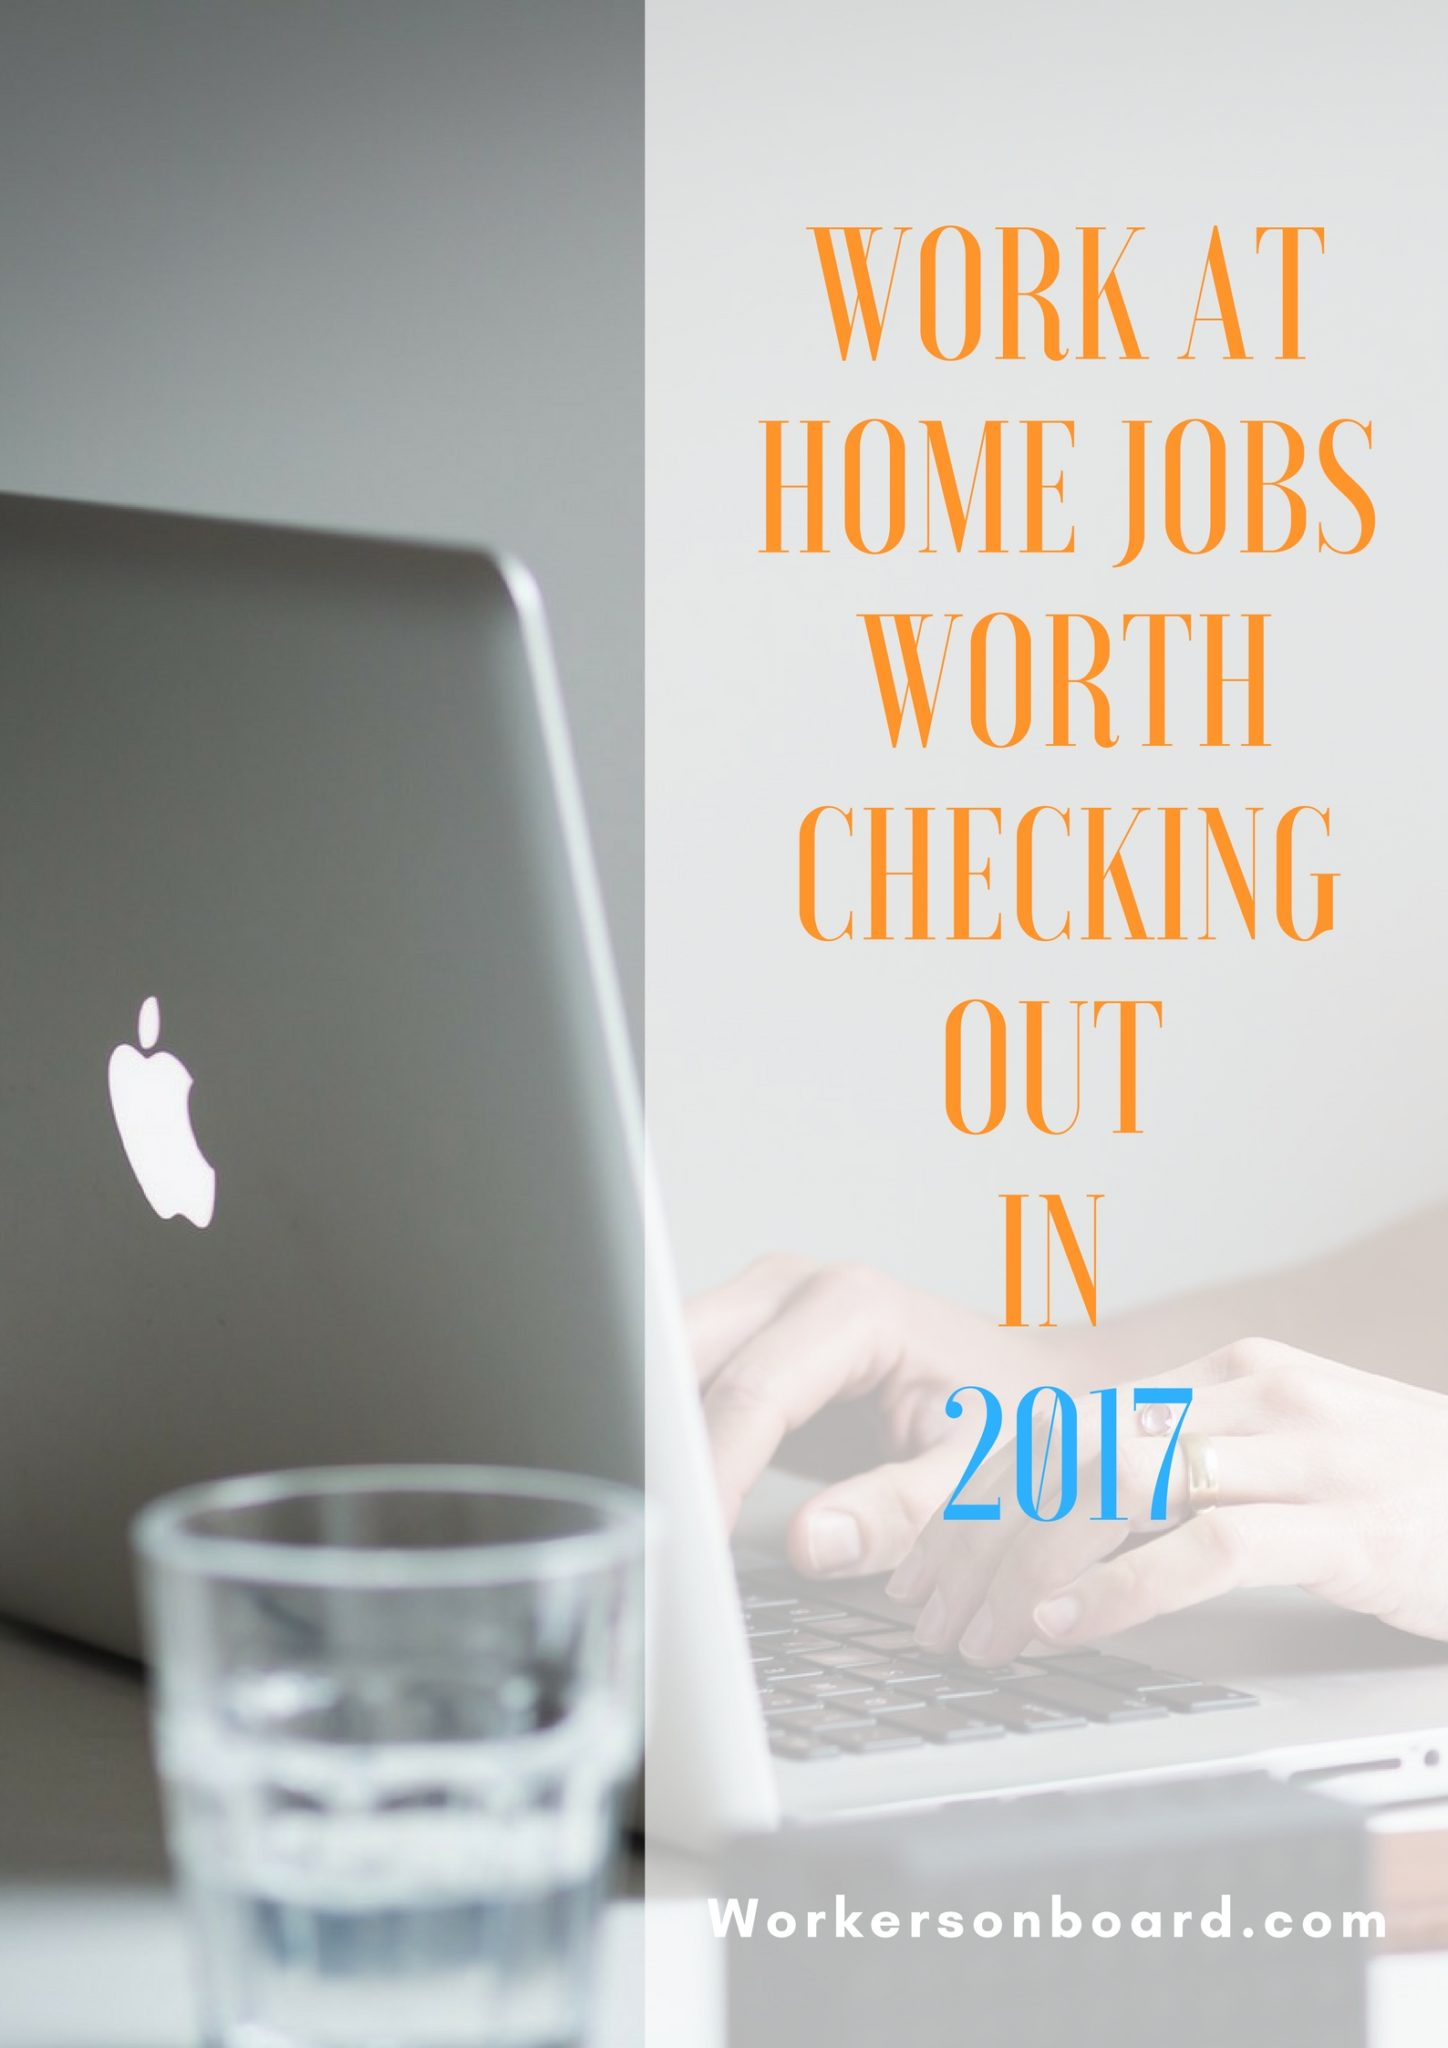 Work at Home Jobs Worth Checking Out in Workersonboard